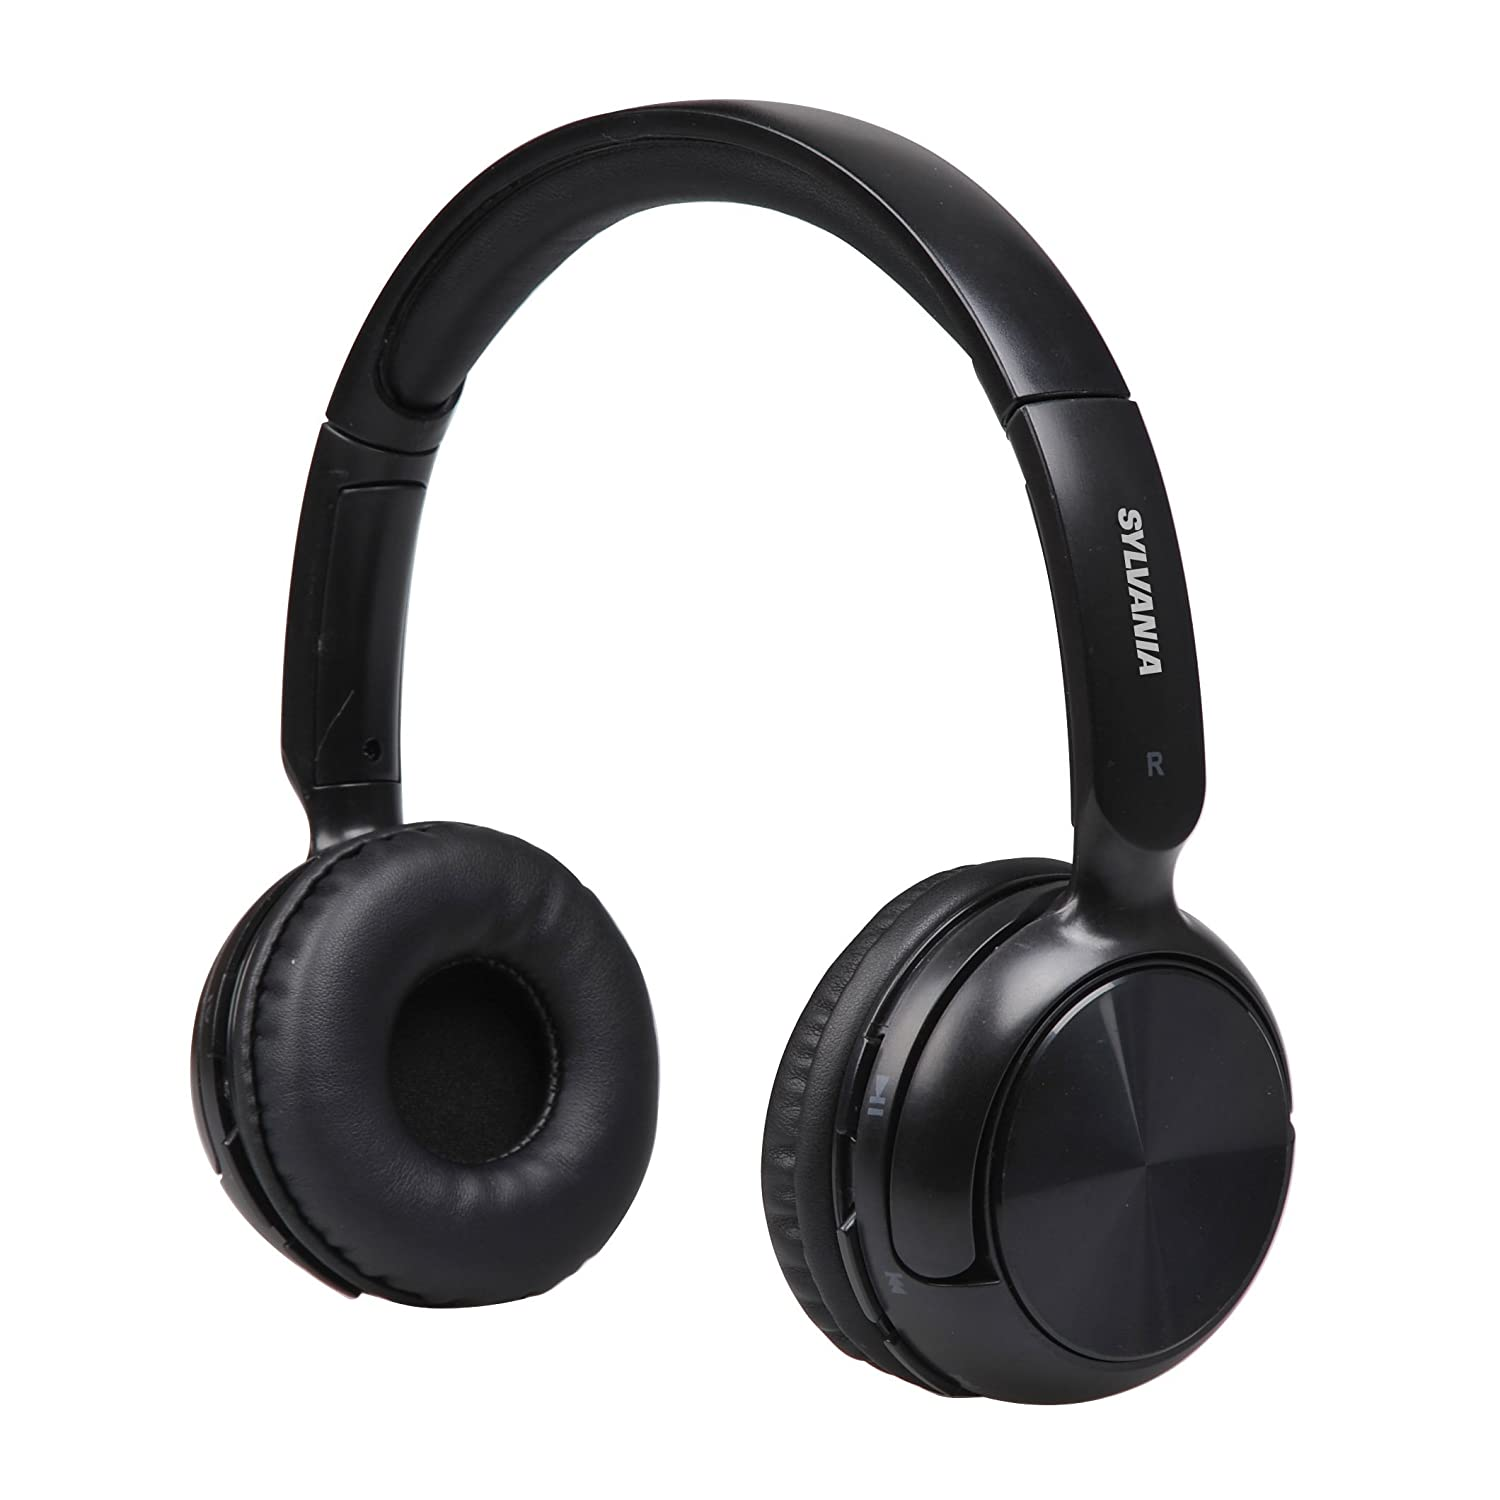 Sylvania SBT235-Black Bluetooth Wireless Headphones with Microphone, Black (Renewed)